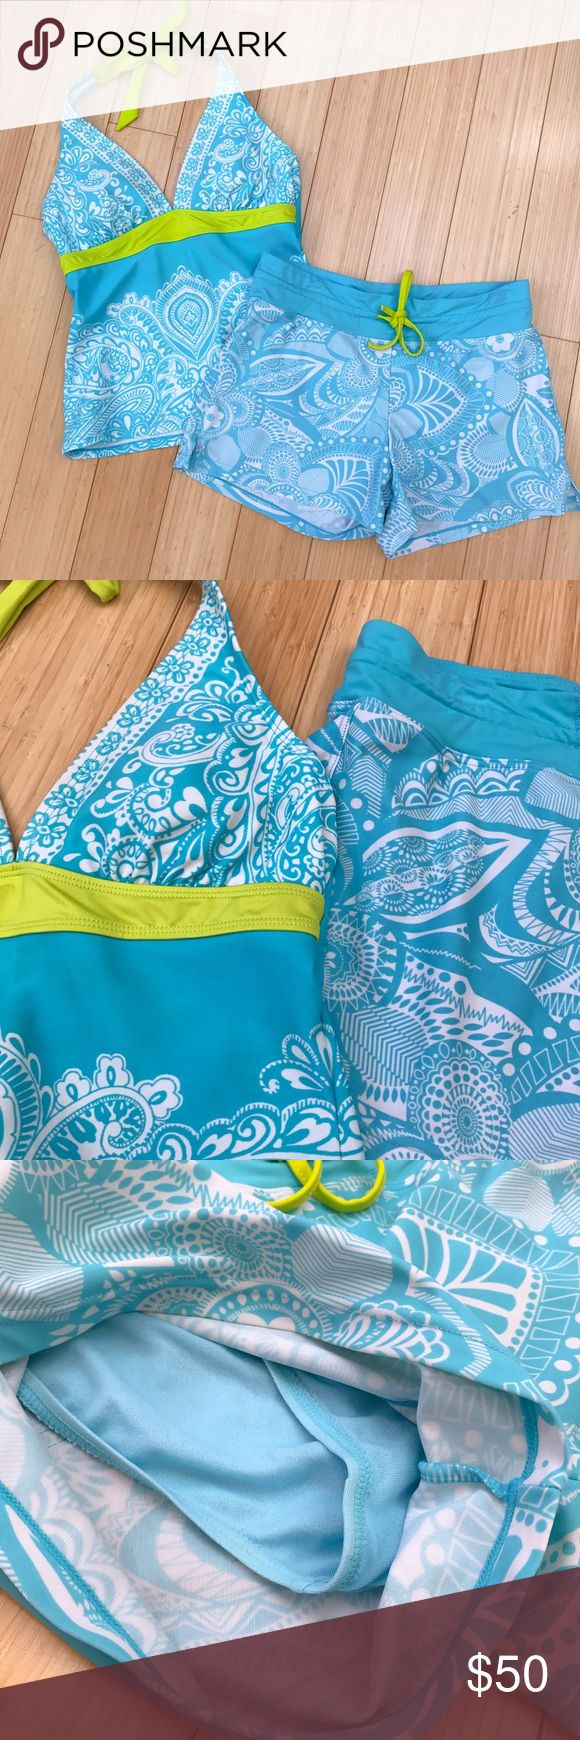 ATHLETA tankini swimsuit, boy shorts, S. Super nice Athleta tankini bathing suit, size small. Turquoise with white swirls and chartreuse trim. Shelf bra in the top, halter style, removable bra cups present. The bottoms are swim shorts with an internal bikini lining to keep things cozy, small back pocket. Everything is in great condition, the shorts might be the tiniest shade lighter. This is an excellent, quality swimsuit for people who prefer to do more than just sun bathe. Athleta Swim…